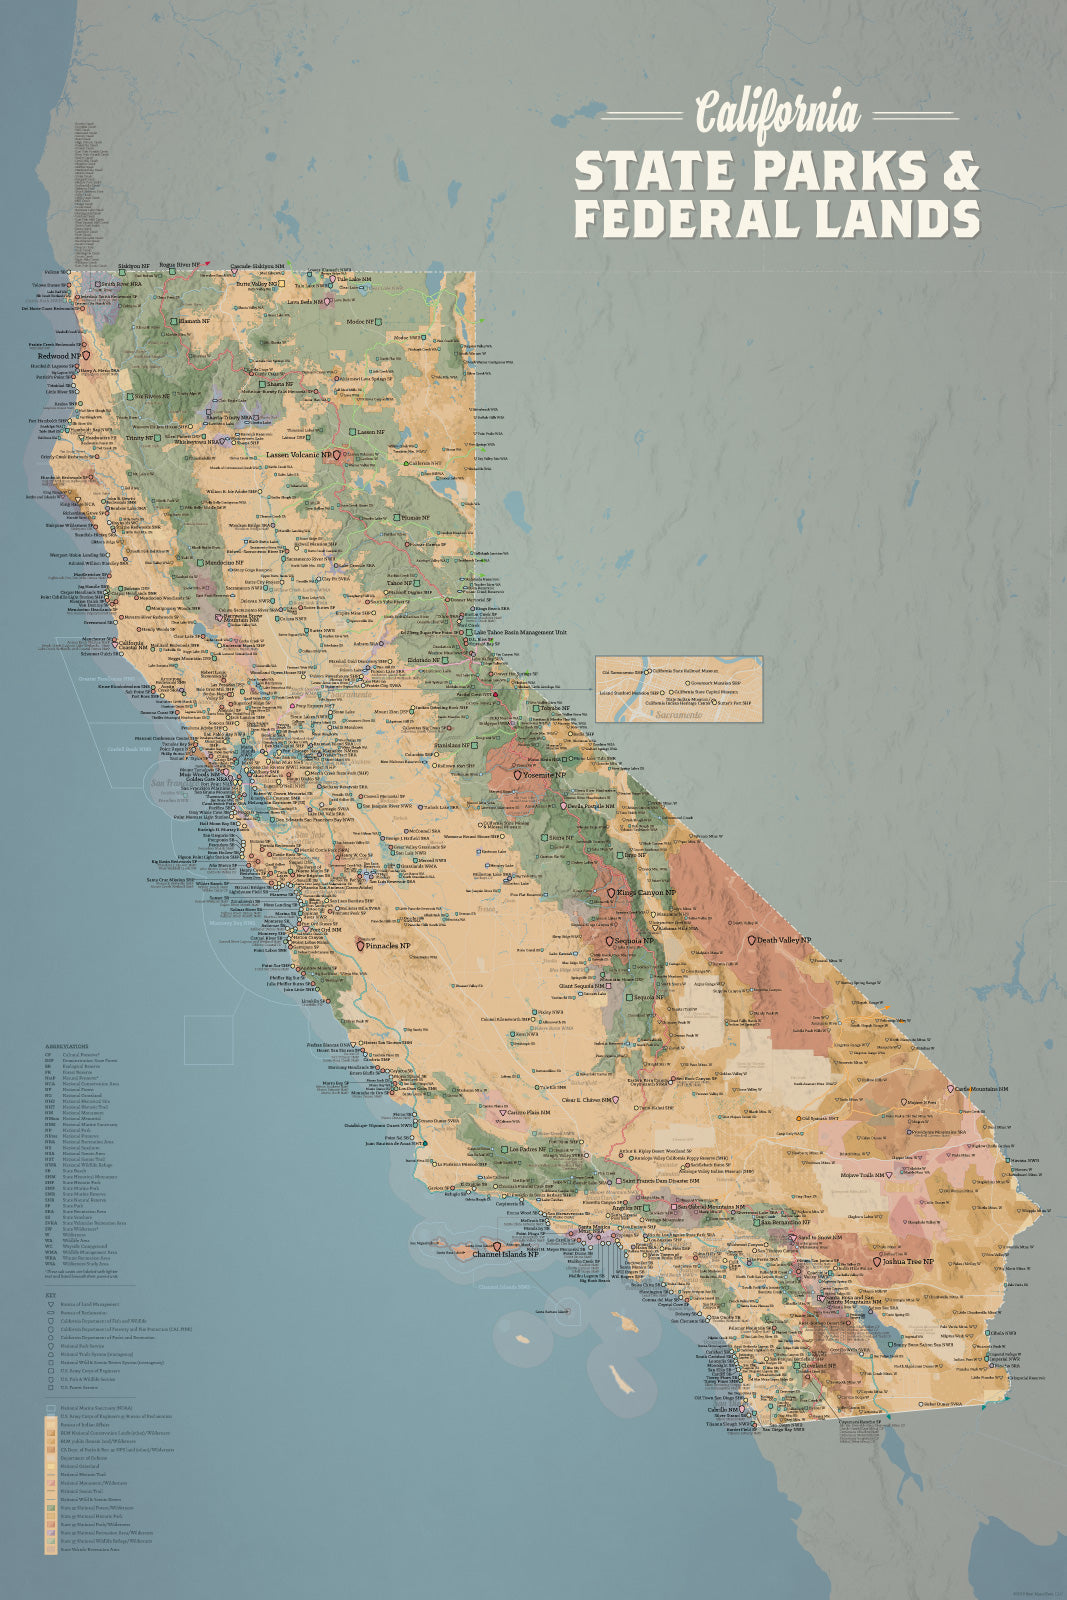 California State Parks & Federal Lands Map 24x36 Poster on